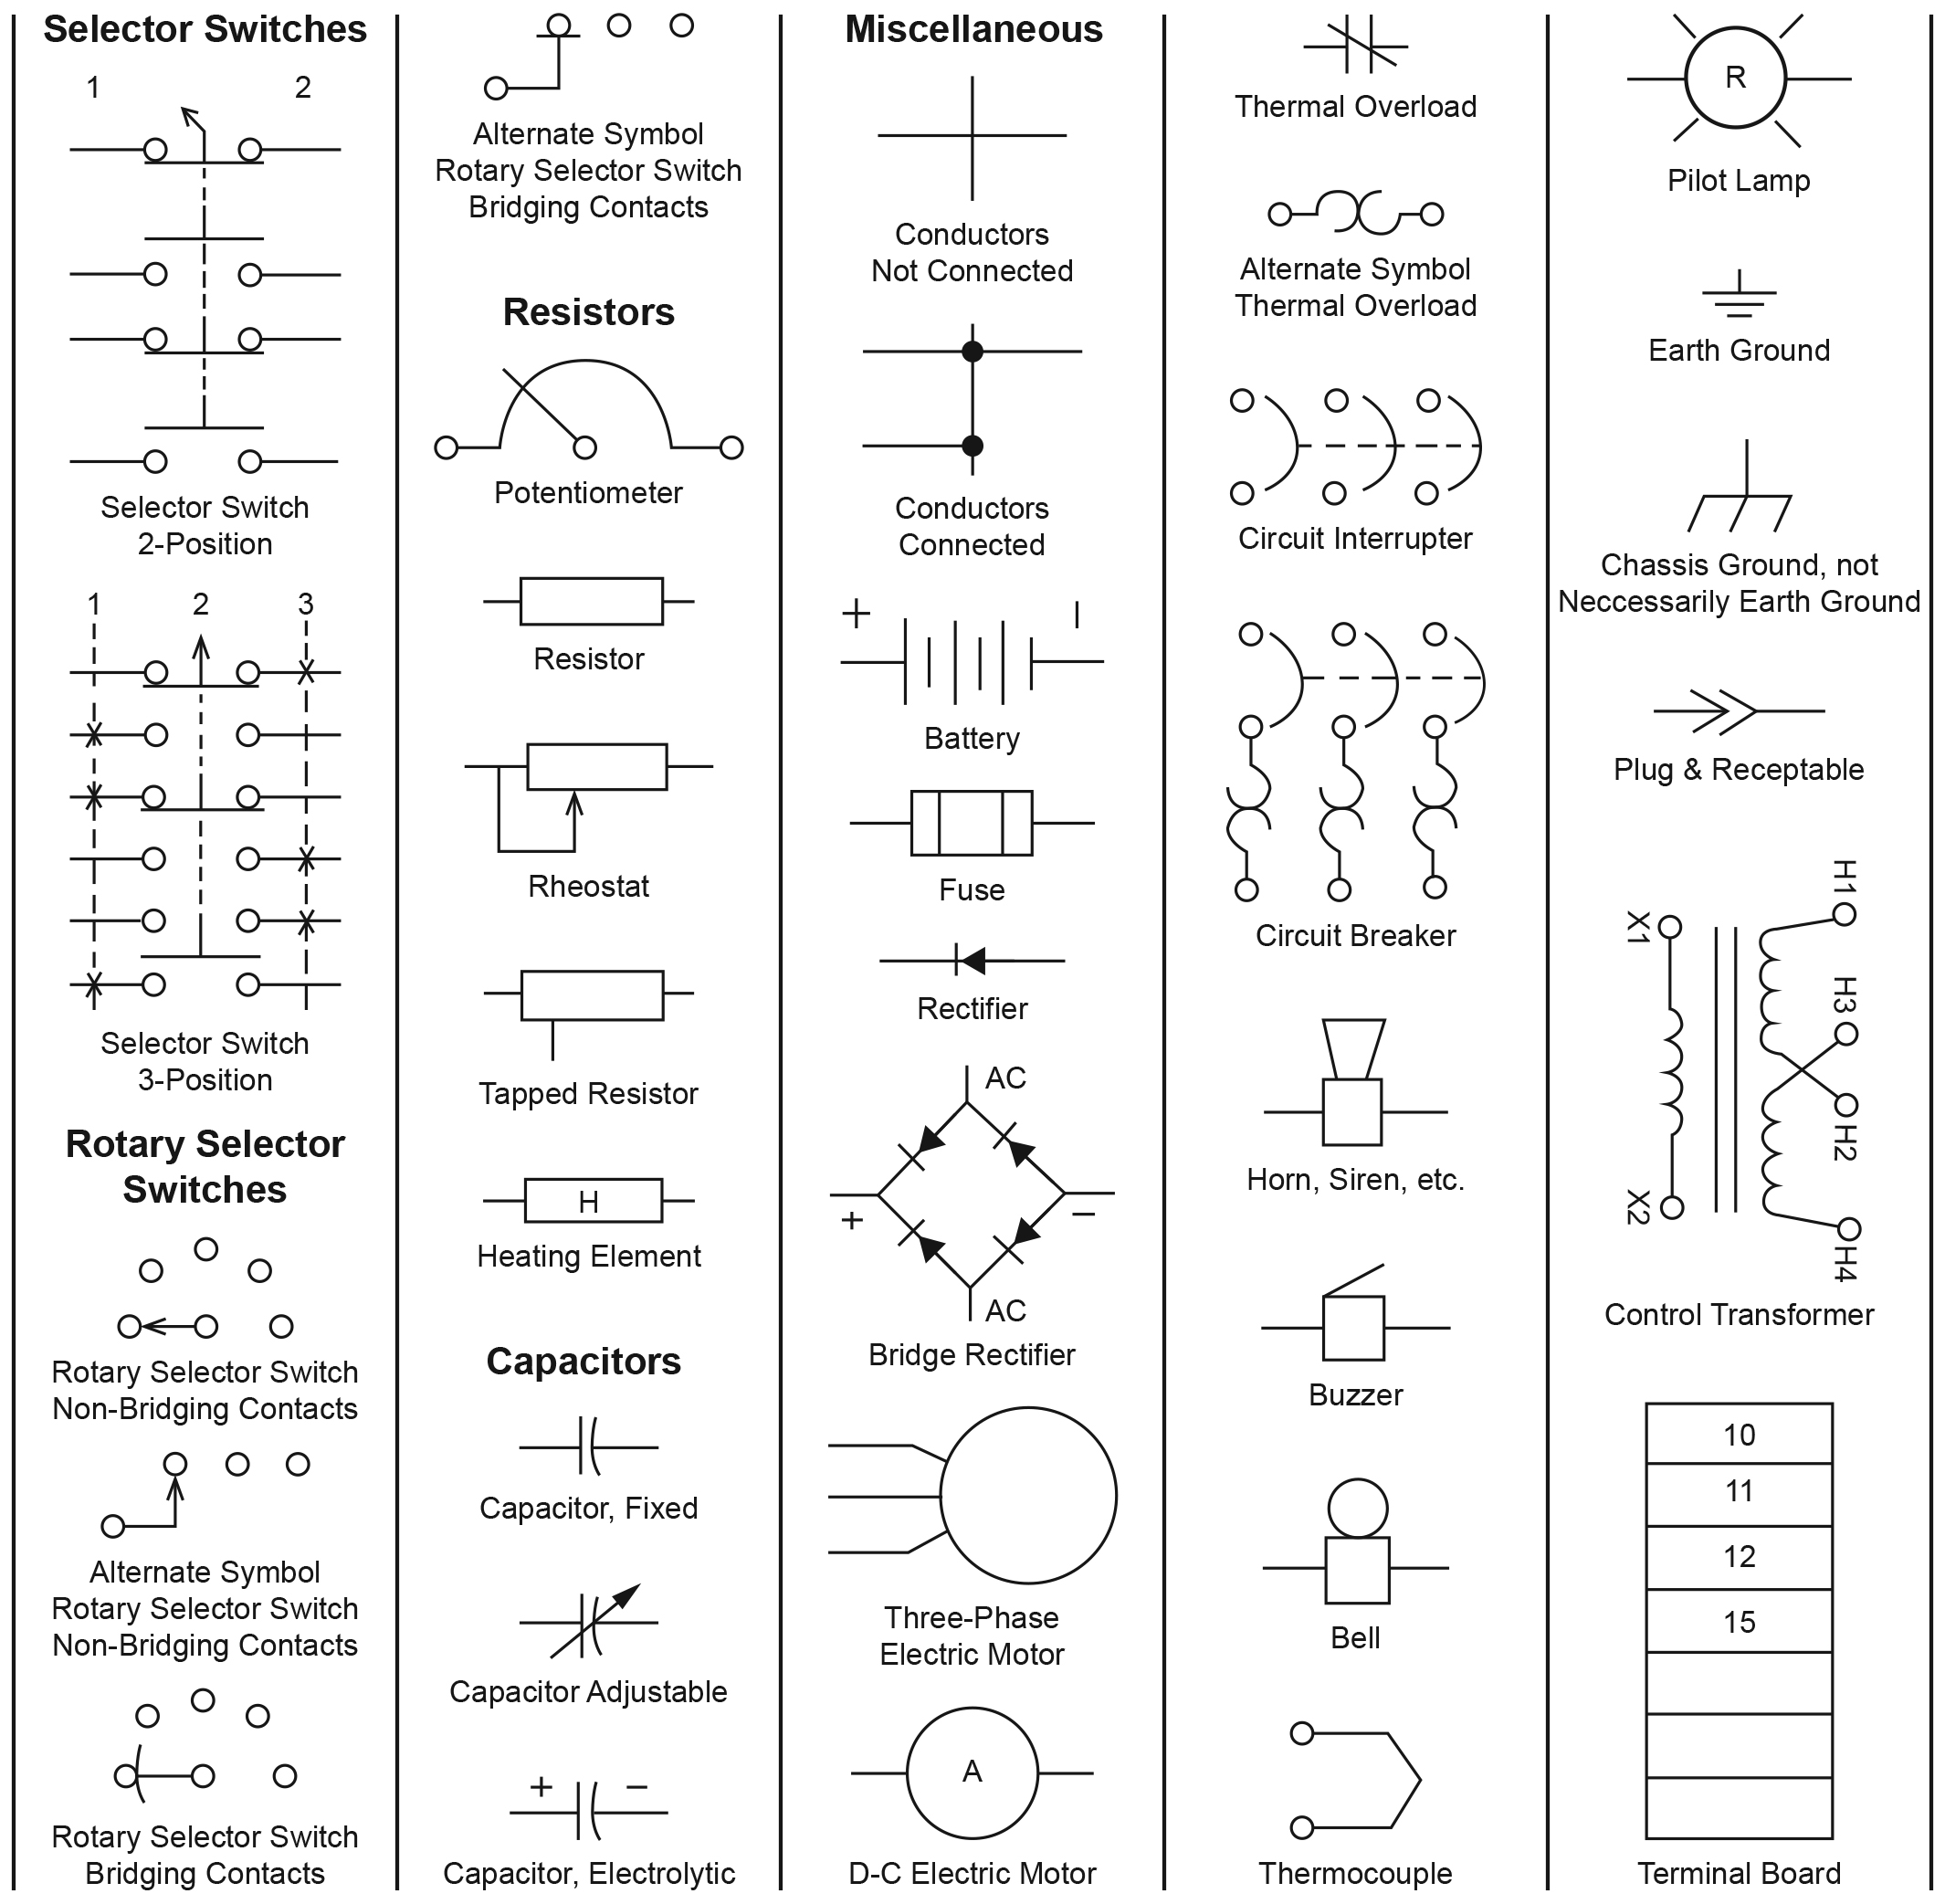 Ladder Diagram Circuit Breaker Symbol Electrical Drawing Wiring Neutral Jic Standard Symbols For Diagrams Womack Machine Rh Womackmachine Com With